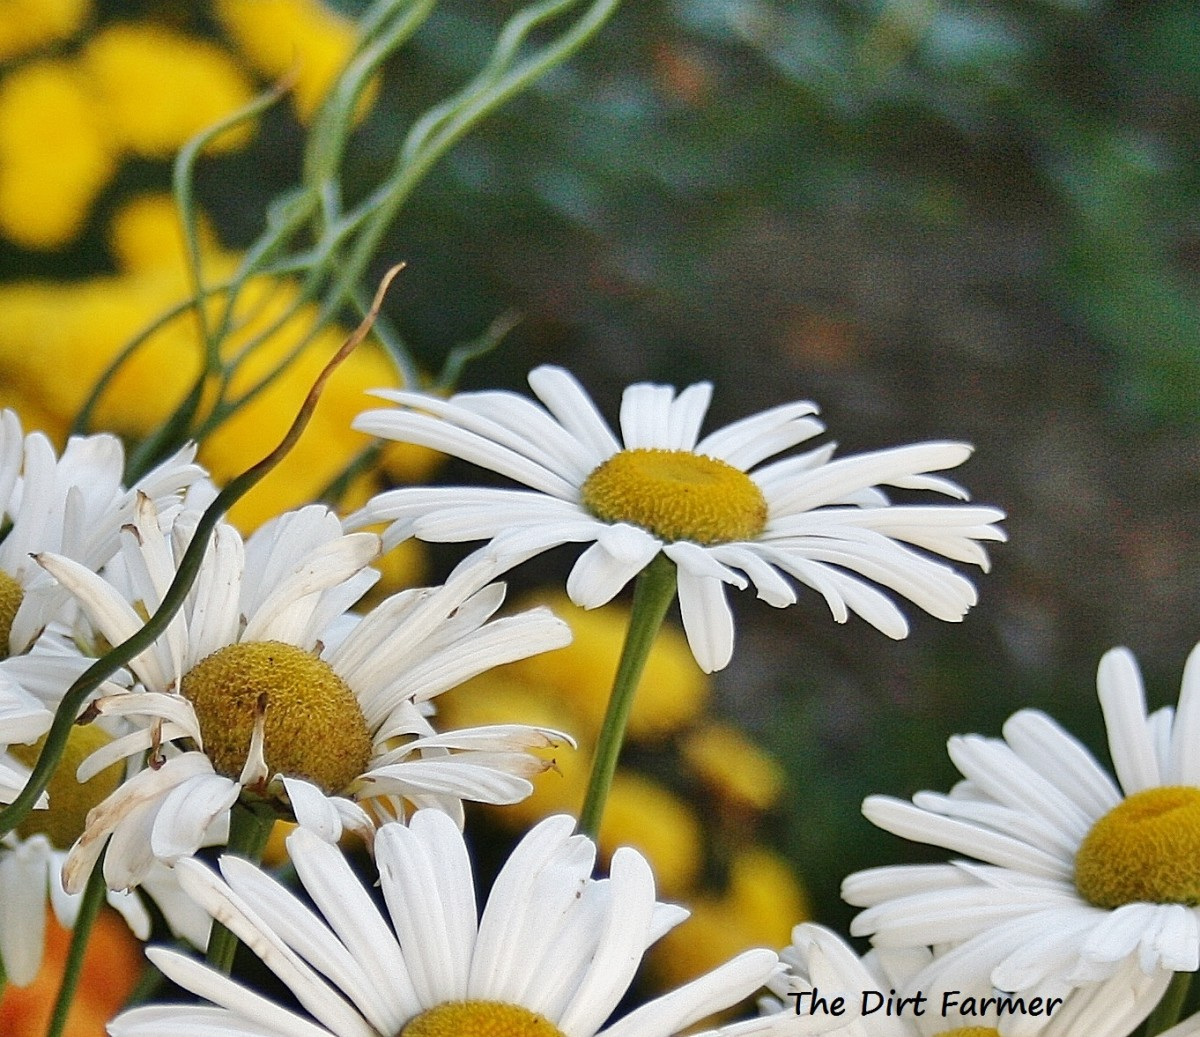 During the growing season, Montauks require litte care beyond deadheading to encourage new blooms.